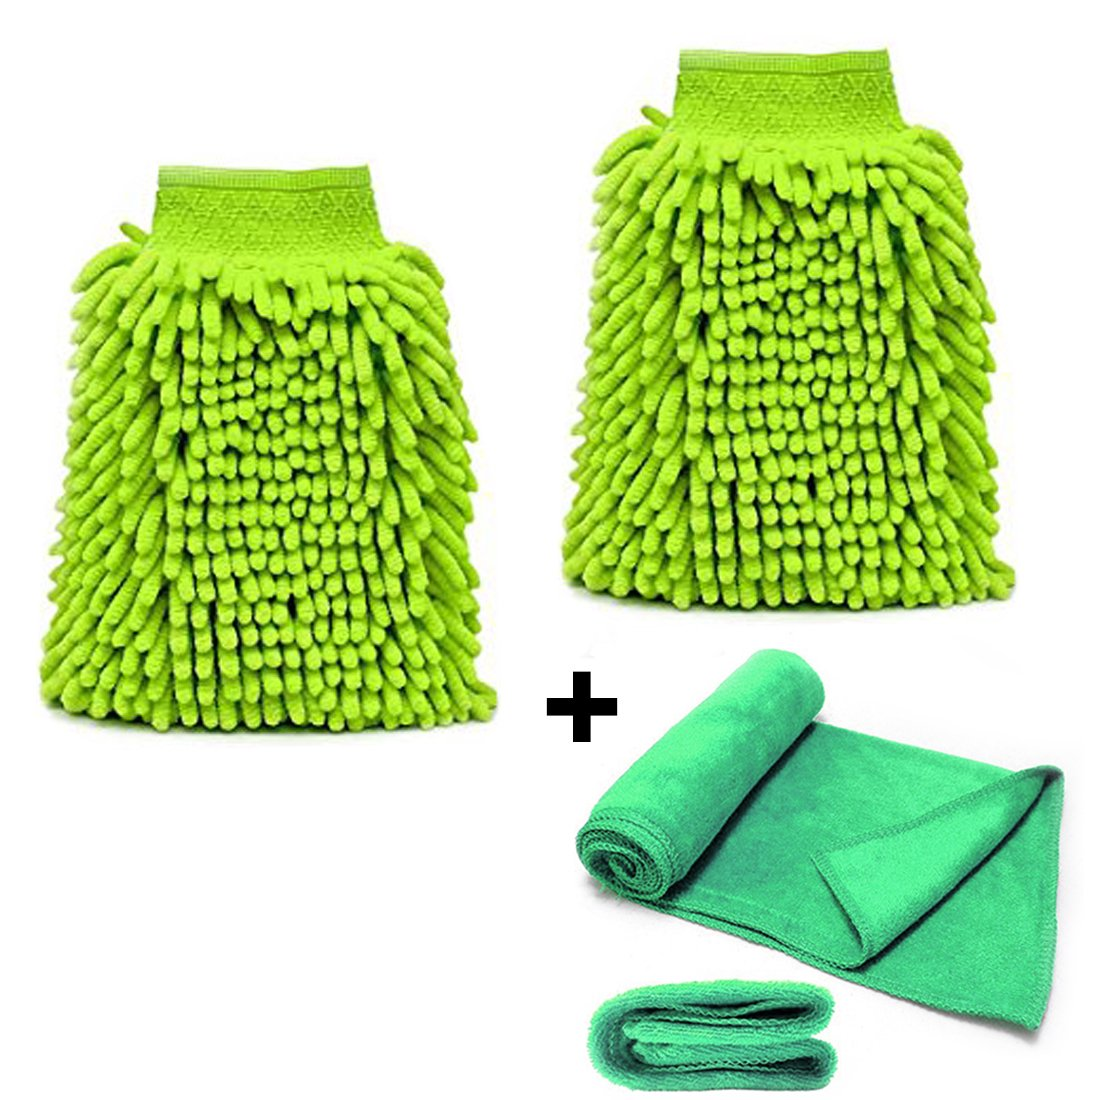 Car Wash Mitts Newland (2-Packs) With Free Microfiber Cleaning Cloth Premium Chenille Microfiber Car Wash Mitt Gloves For Car Wood Mirrors Furniture Glass (Large-any adult, Fluorescent Green) ST001-LightGreen